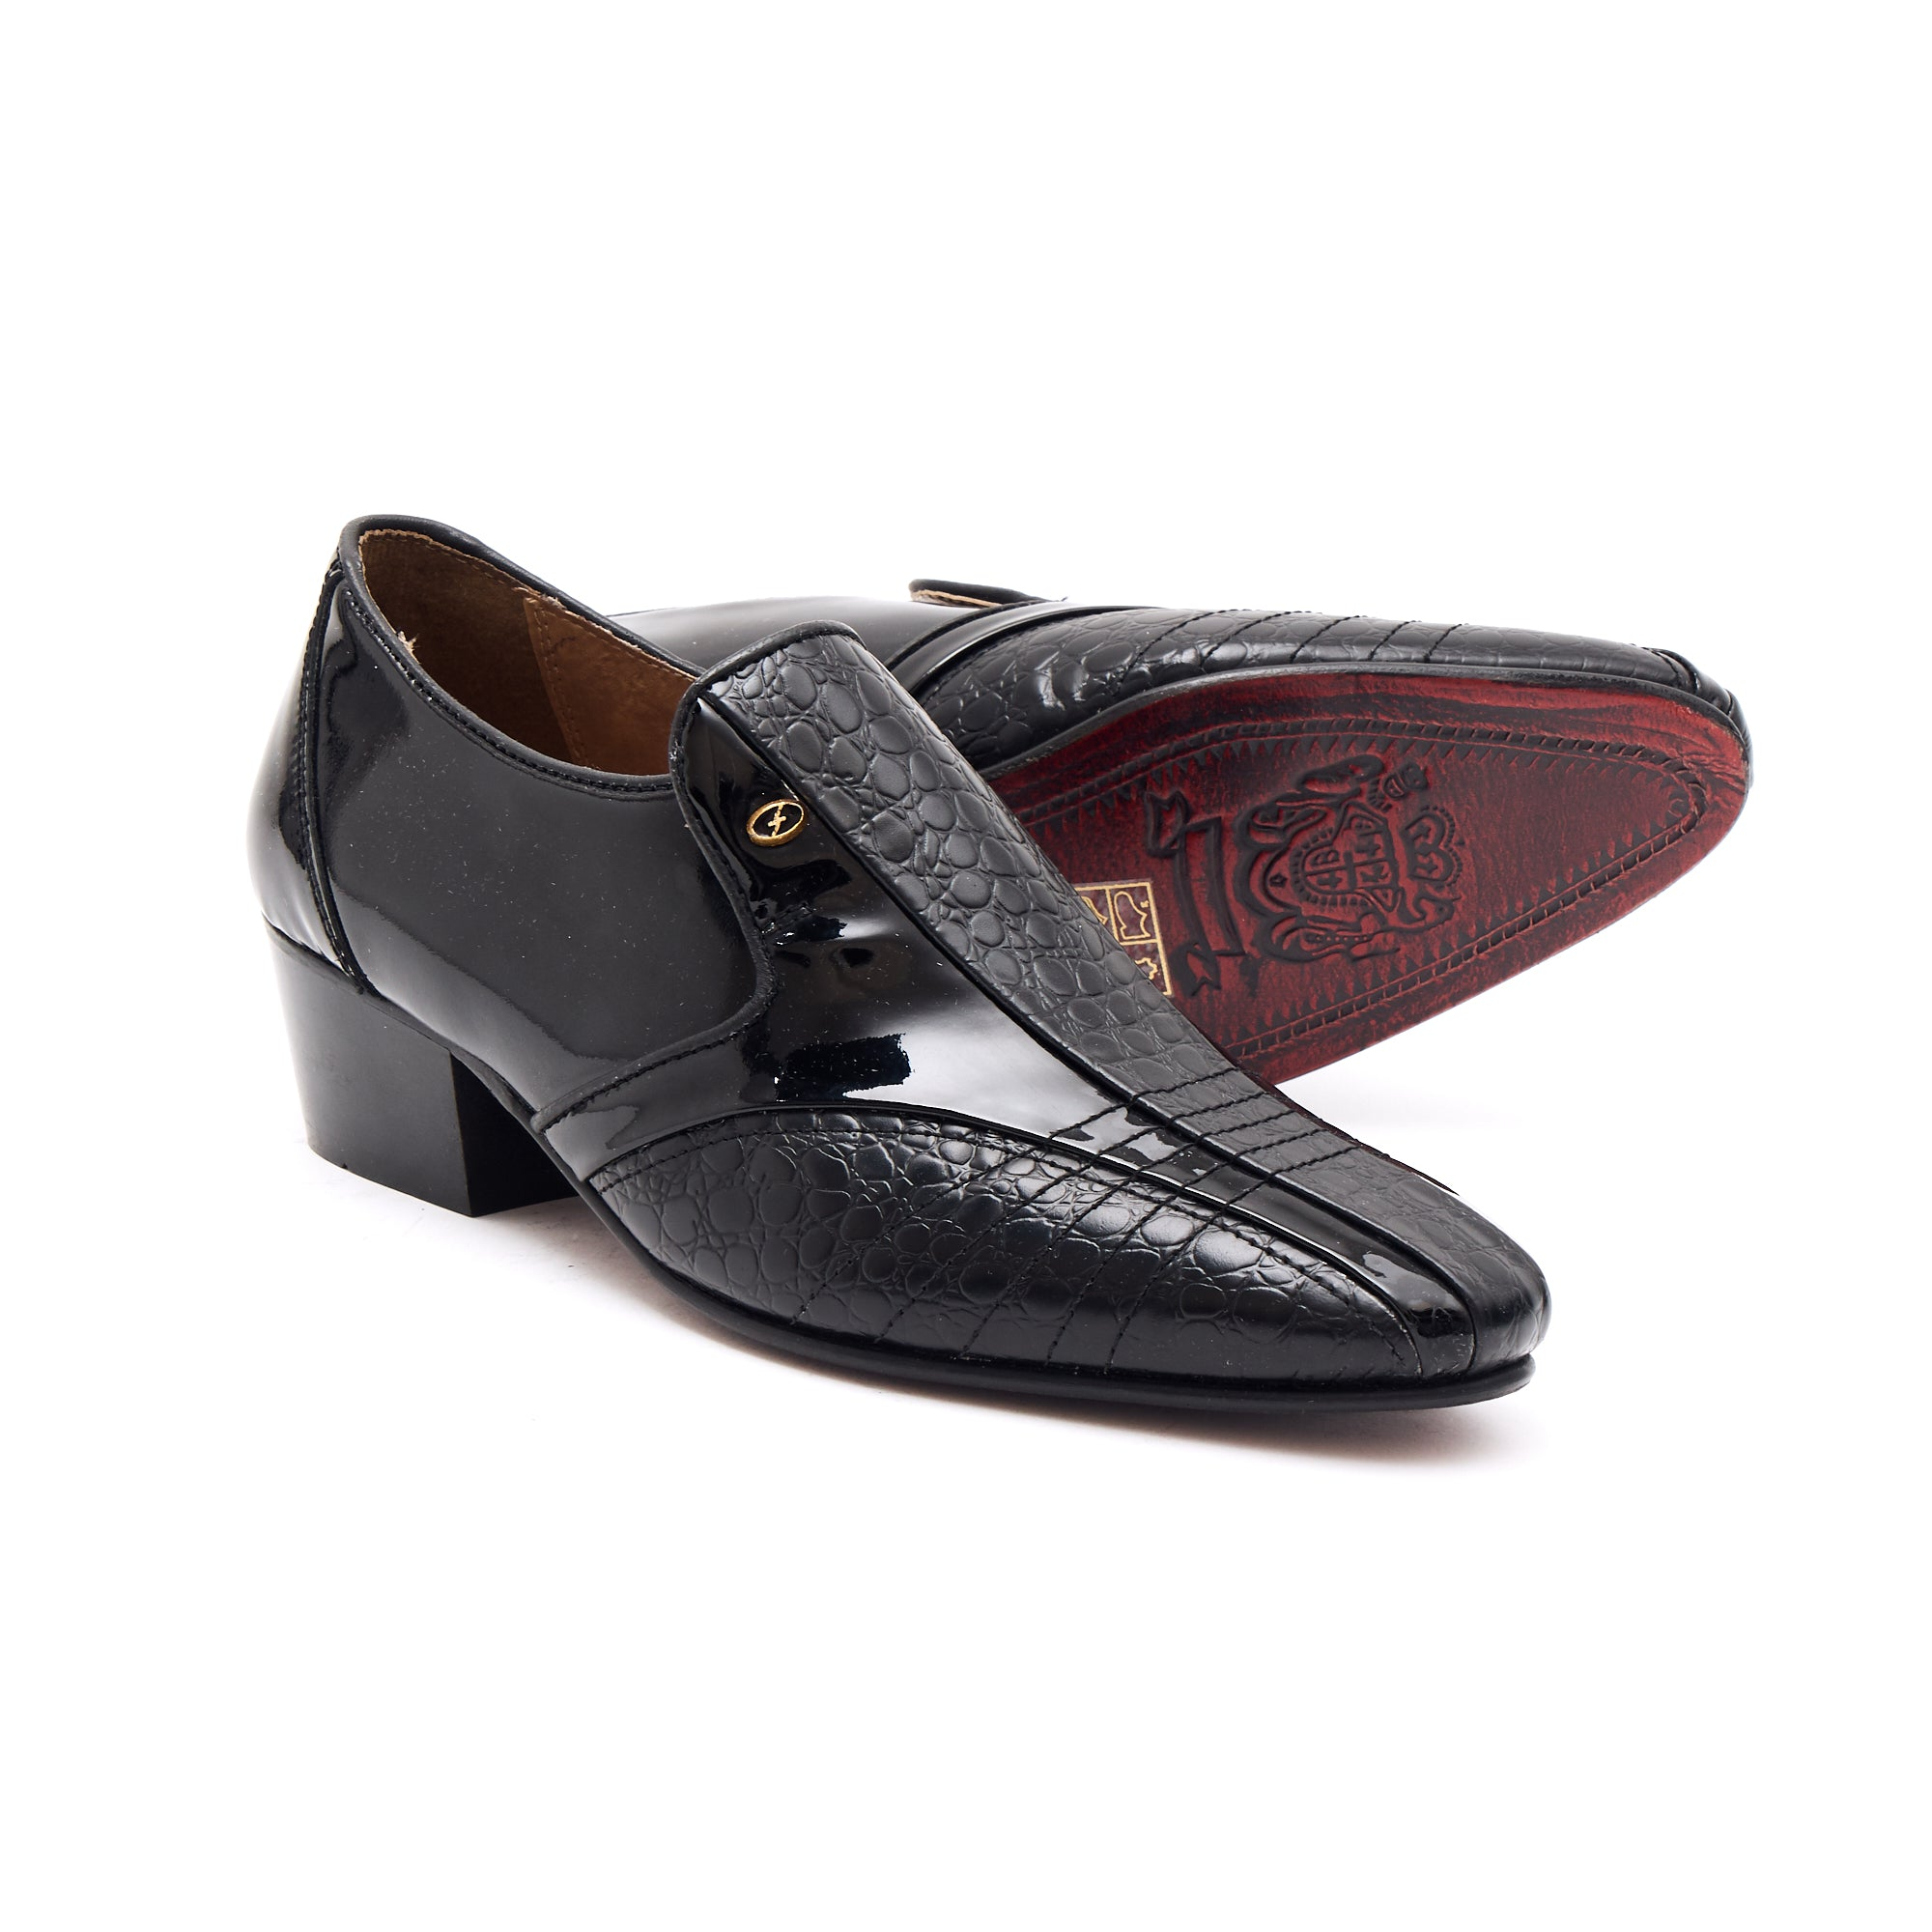 Mens Leather Cuban Heel Patent Shoes-33477 Black